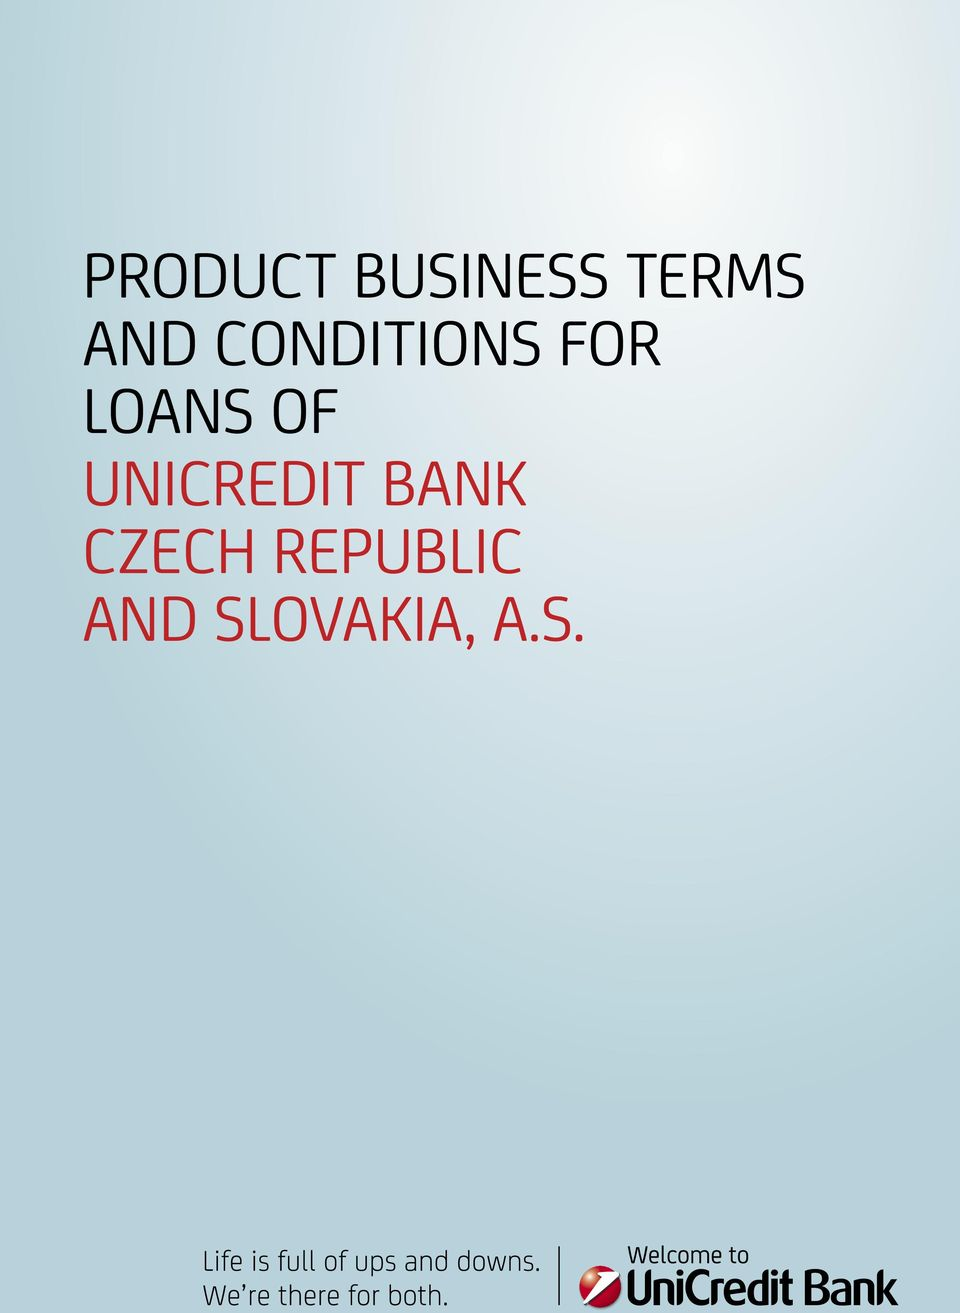 OF UNICREDIT BANK CZECH